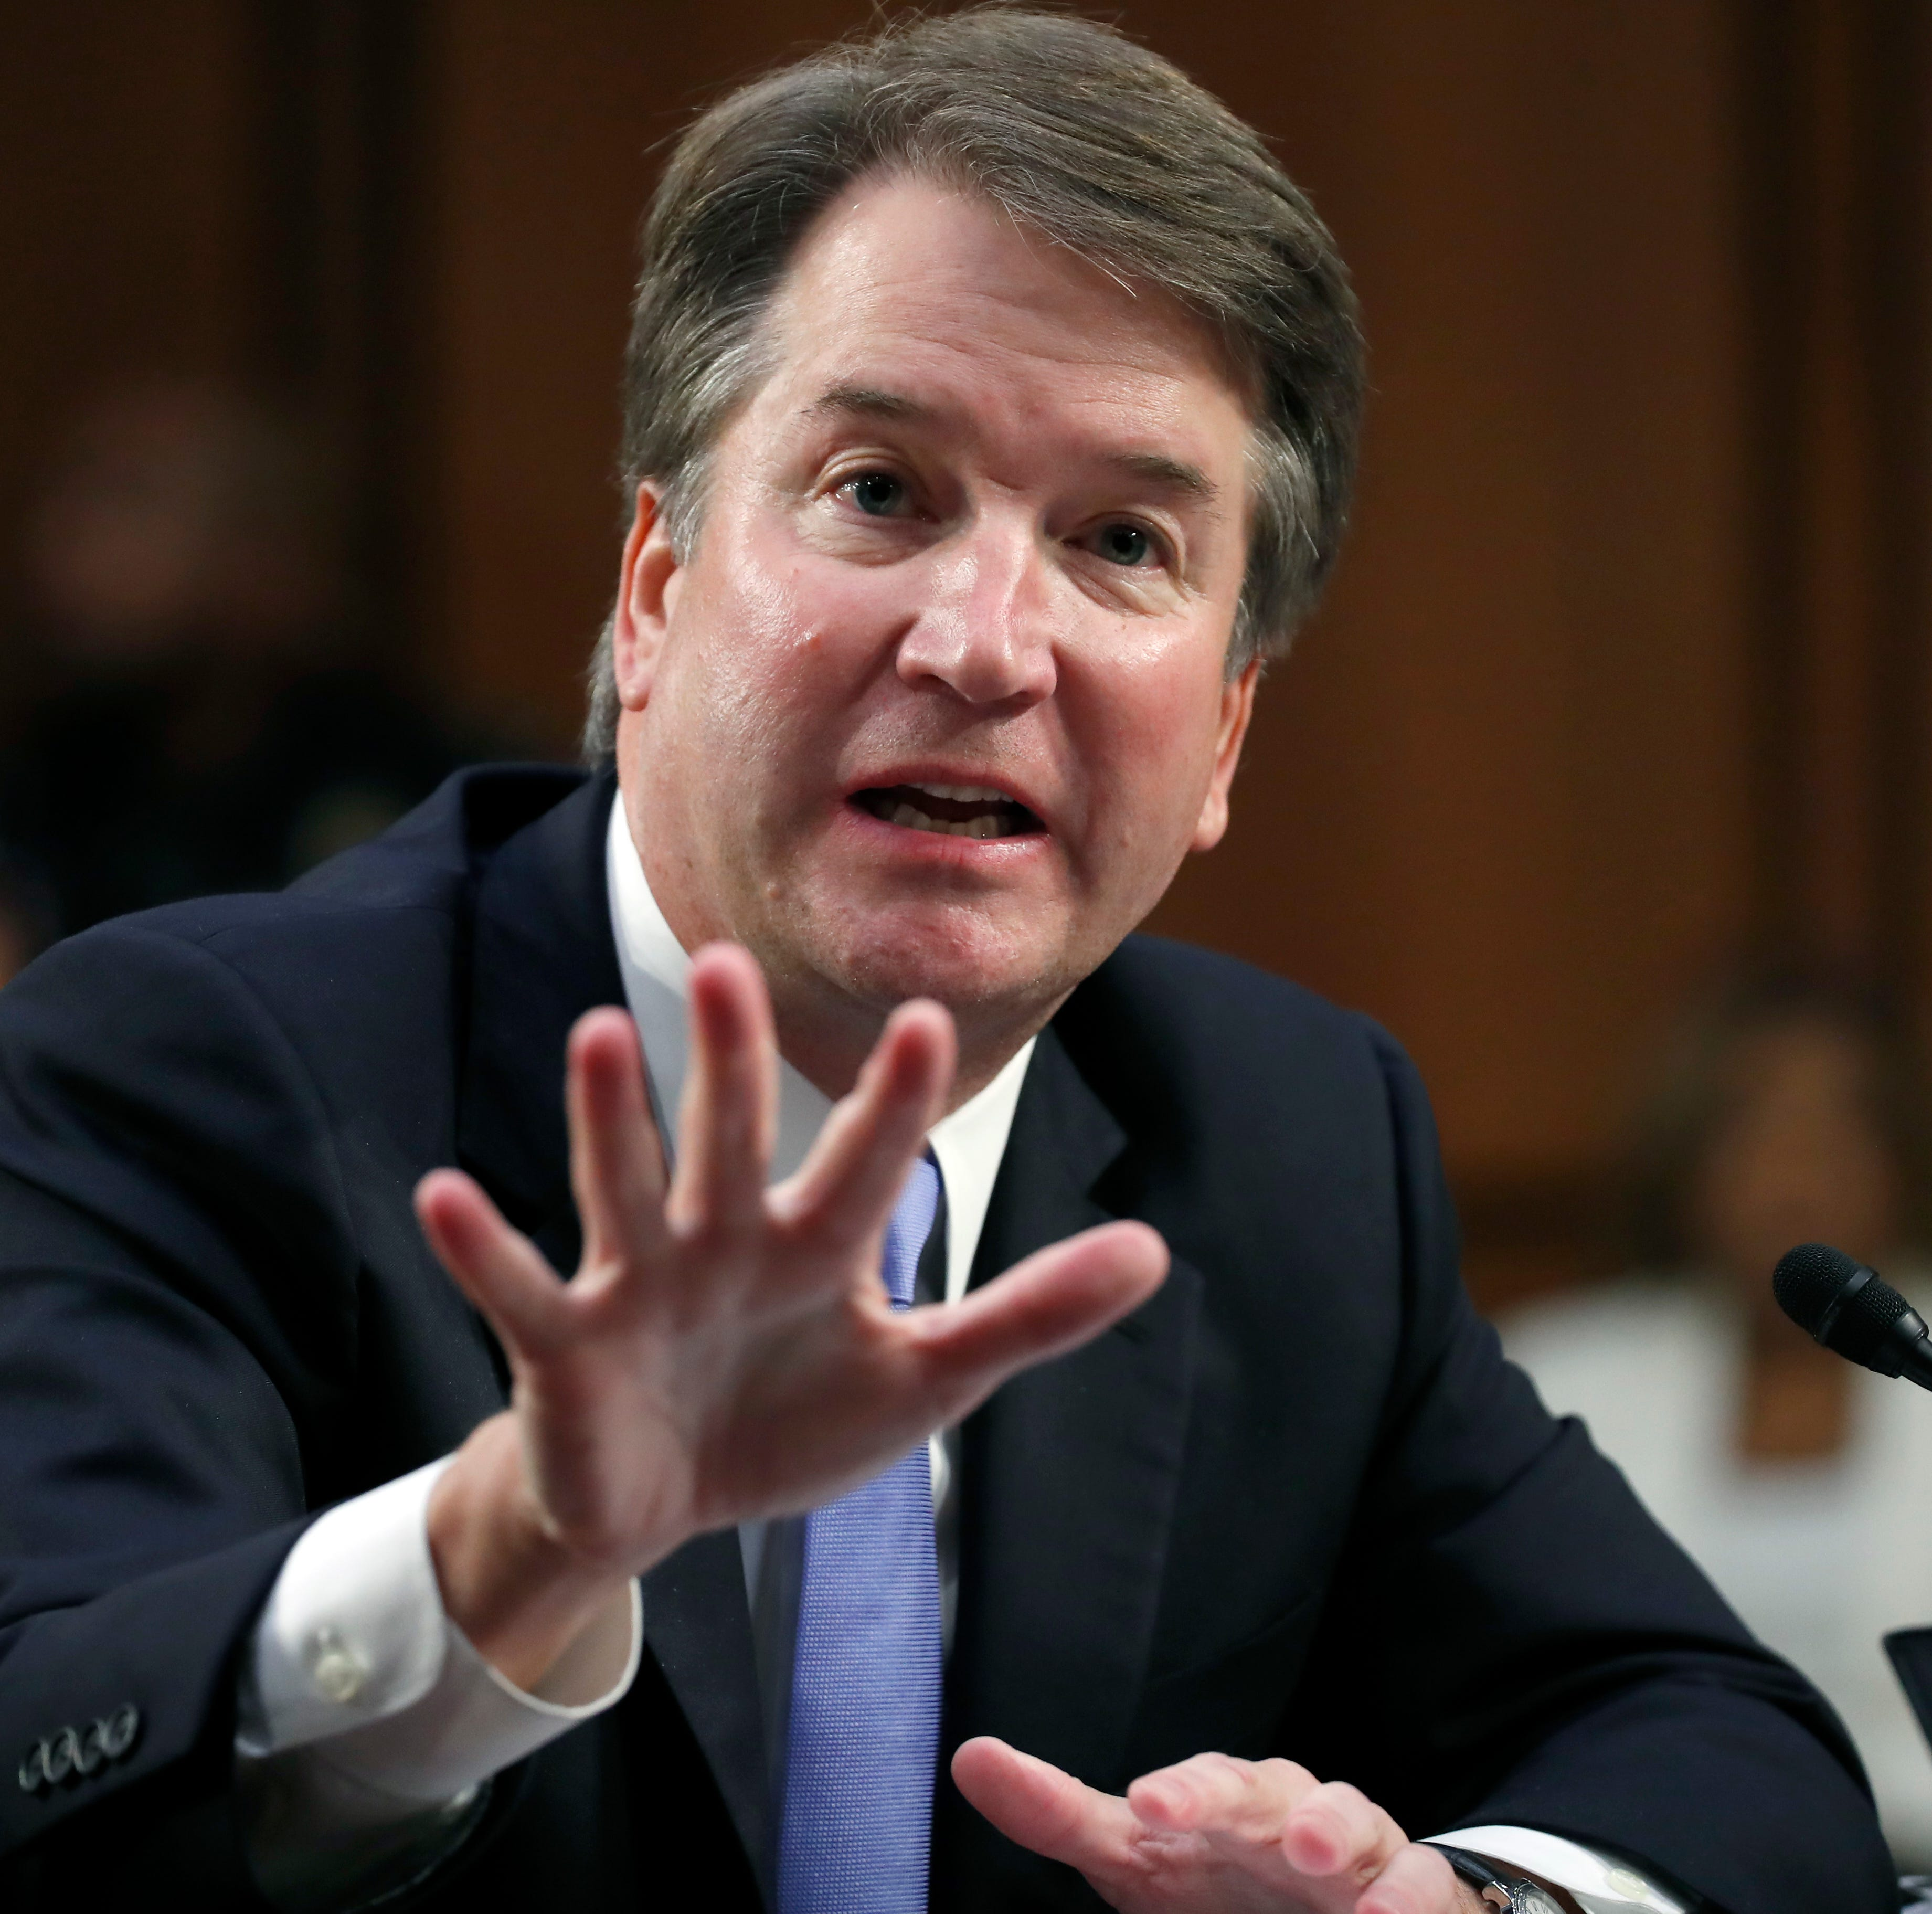 LETTER: Hypocrisy, grandstanding on Kavanaugh vote